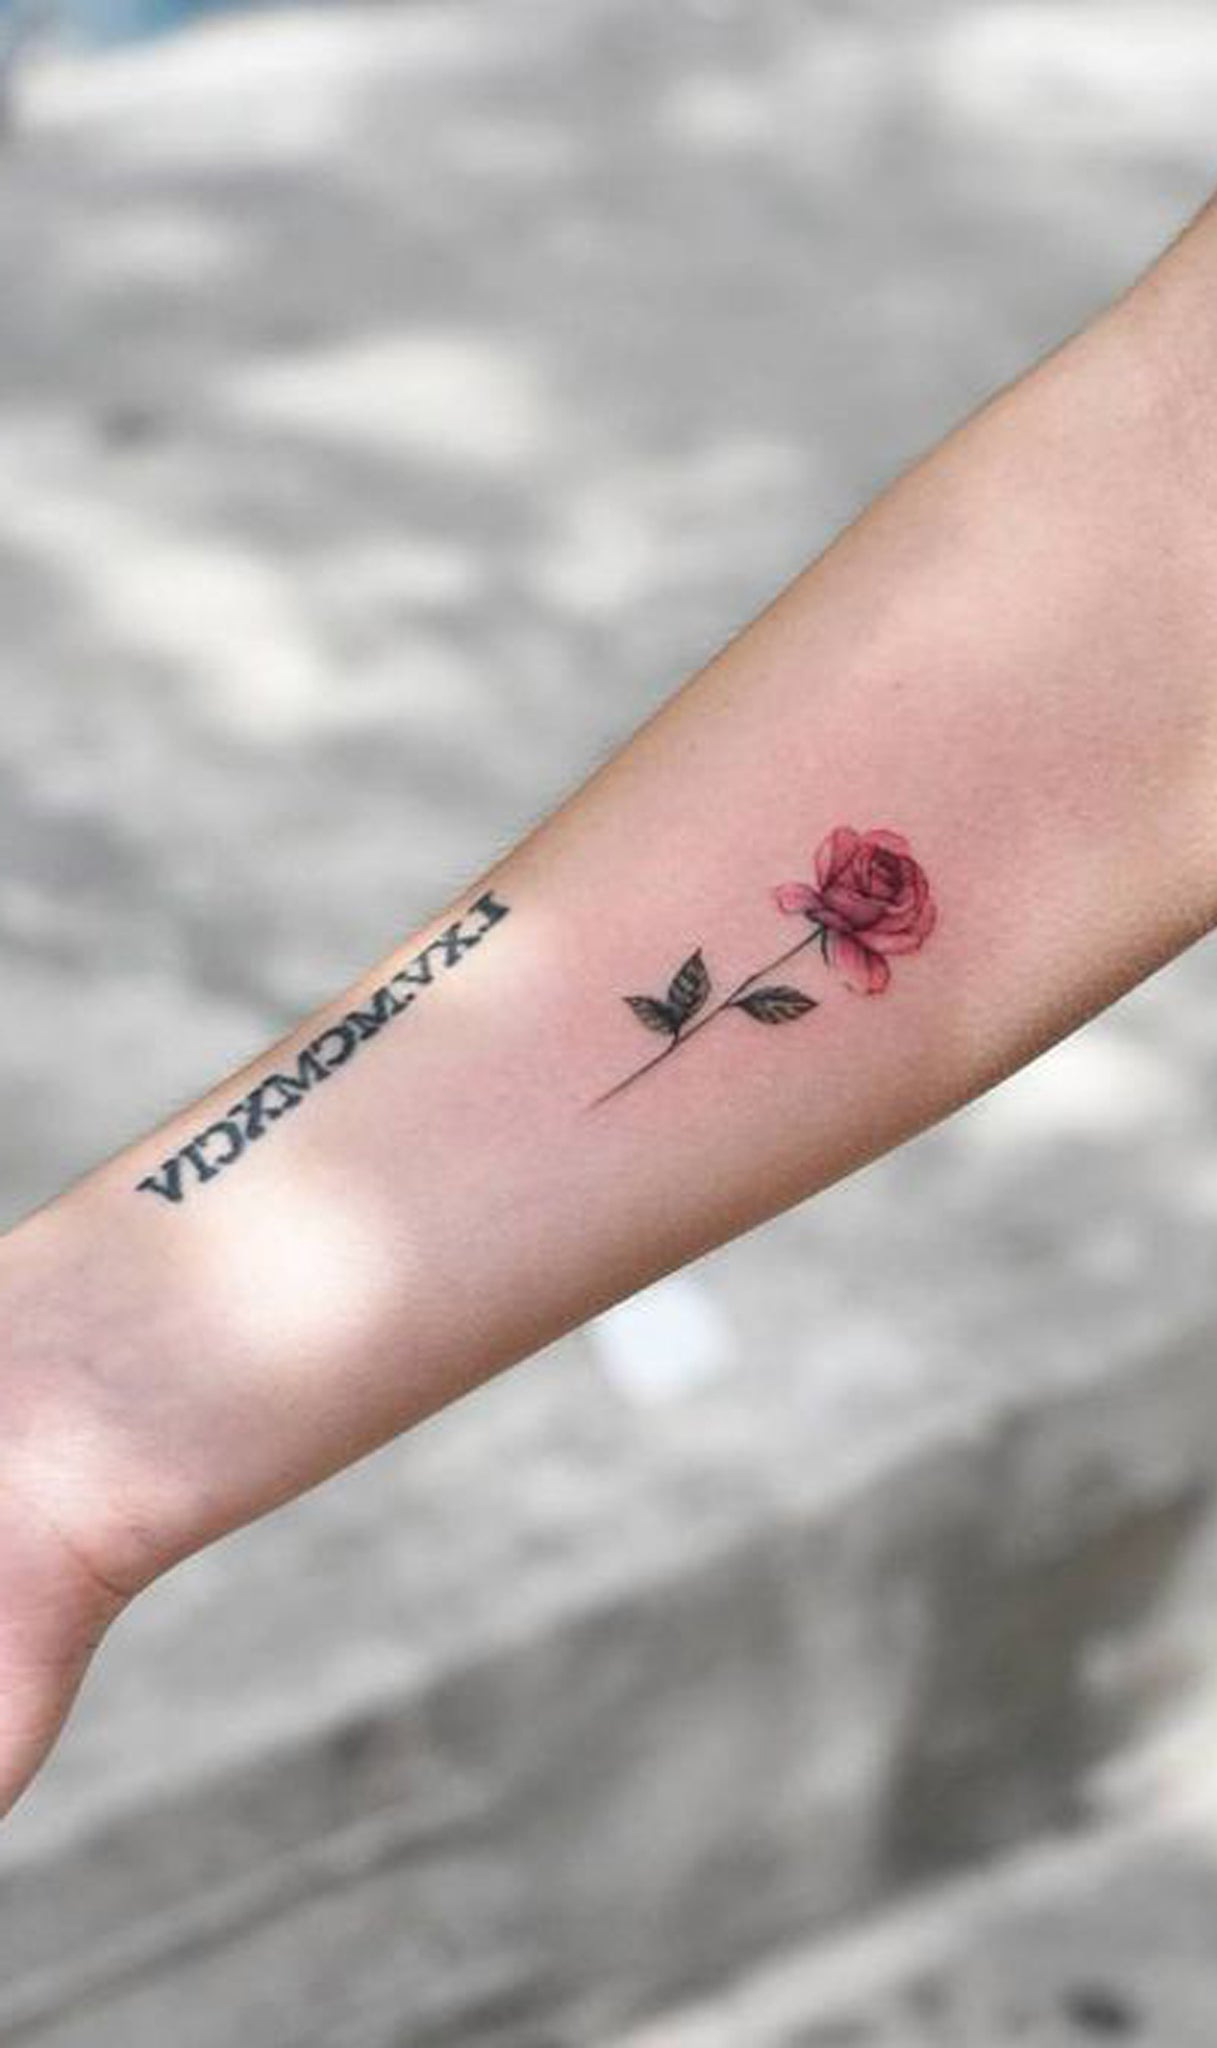 30 simple and small flower tattoos ideas for women mybodiart. Black Bedroom Furniture Sets. Home Design Ideas